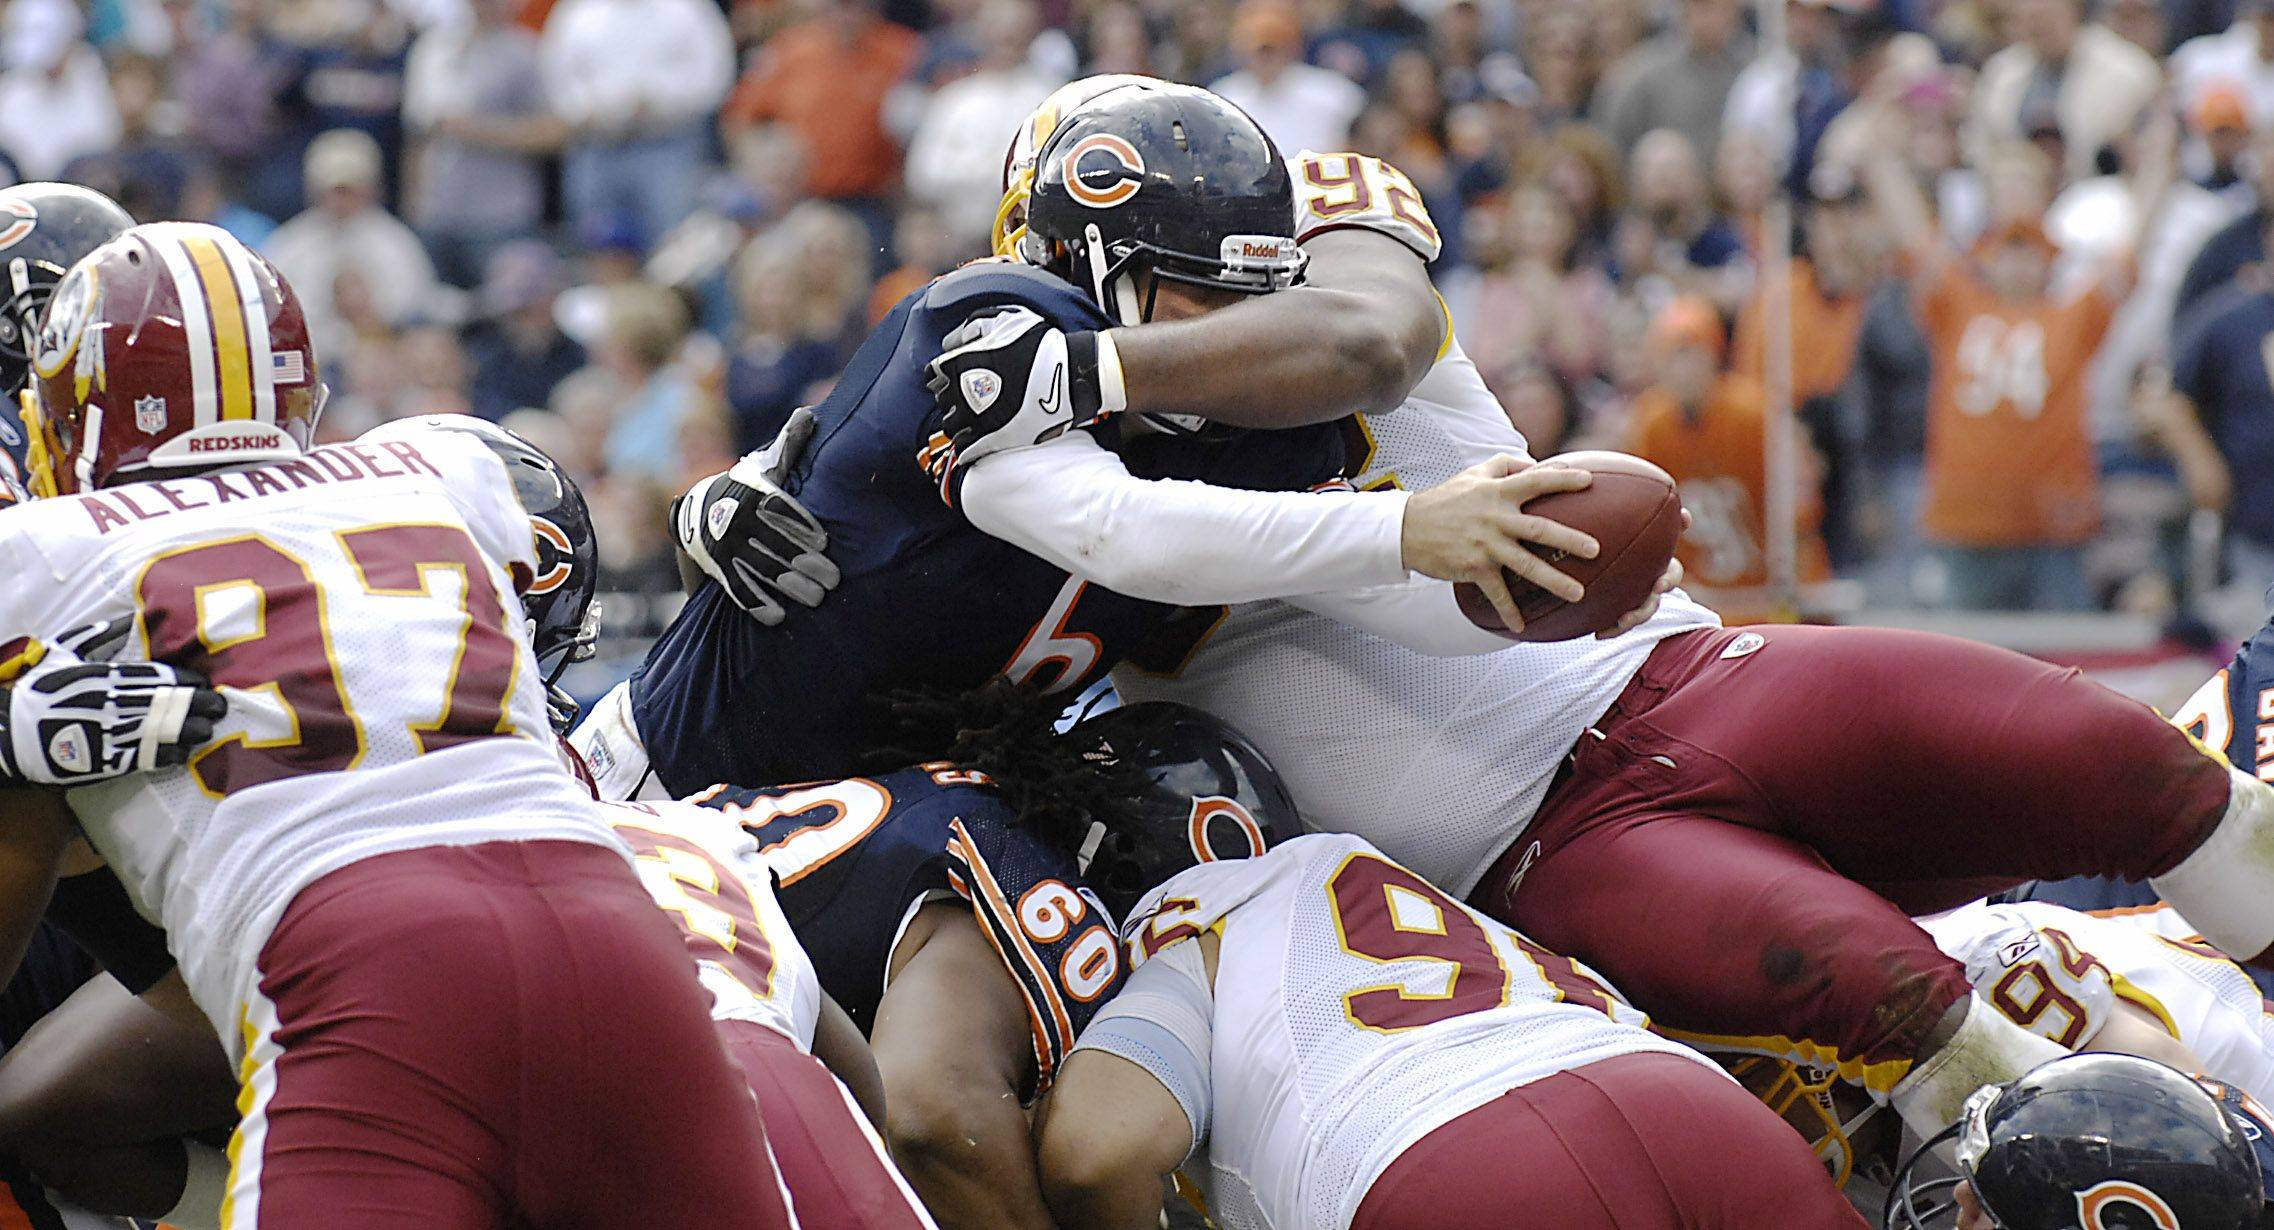 Chicago Bears quarterback Jay Cutler stretches the ball toward the goal line on a second and one play in the third quarter. He fumbled the ball to the Washington Redskins.